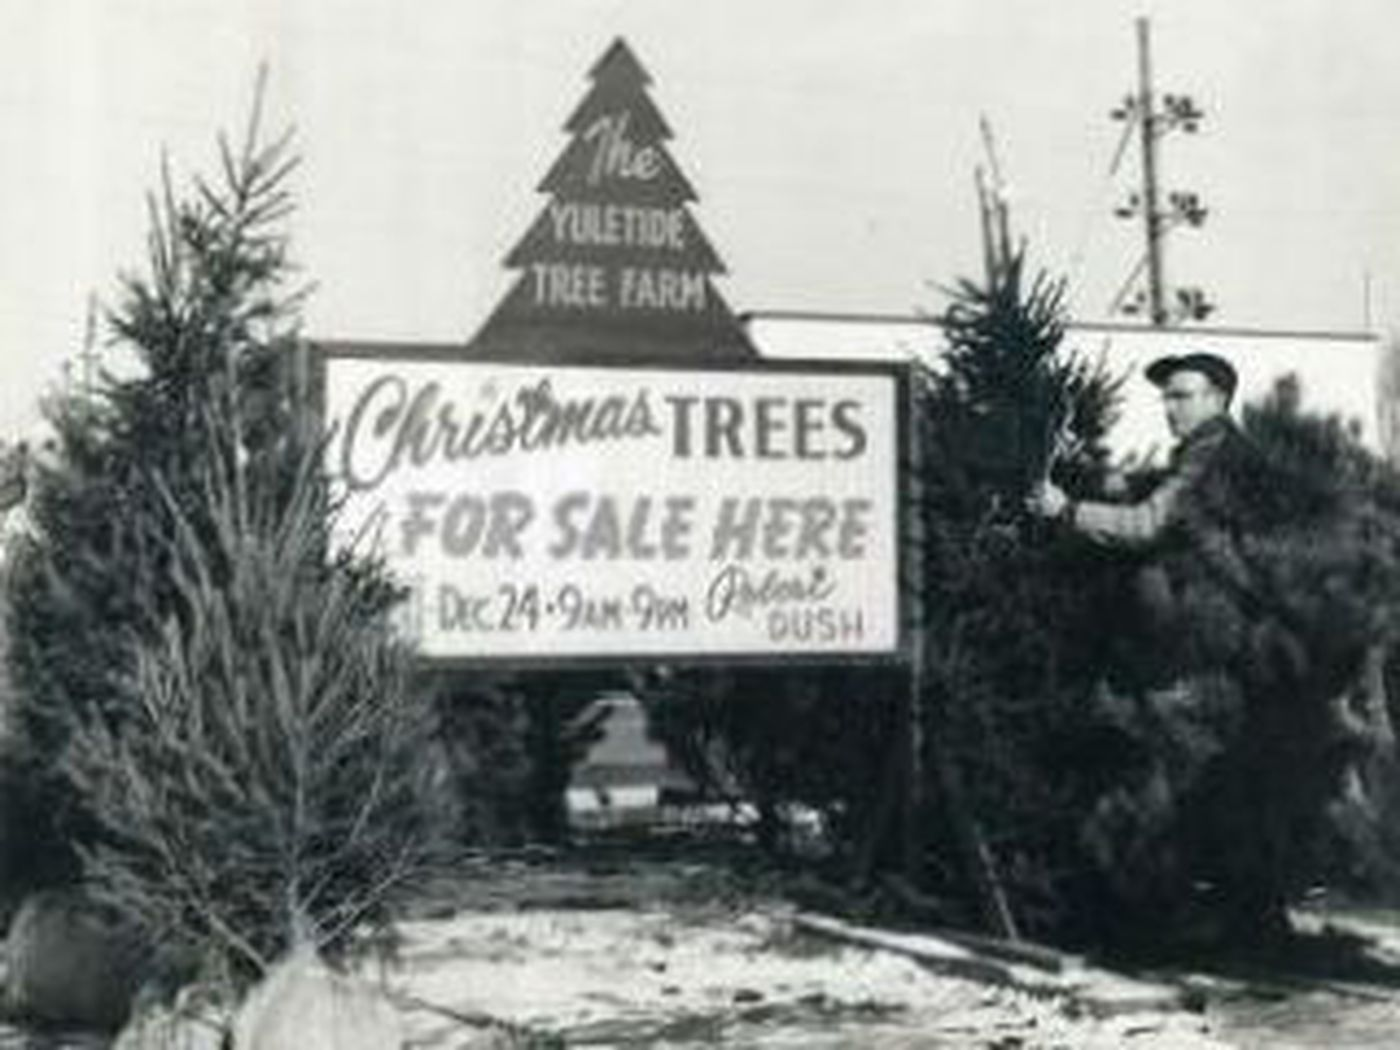 Root rot could limit your Christmas tree selection